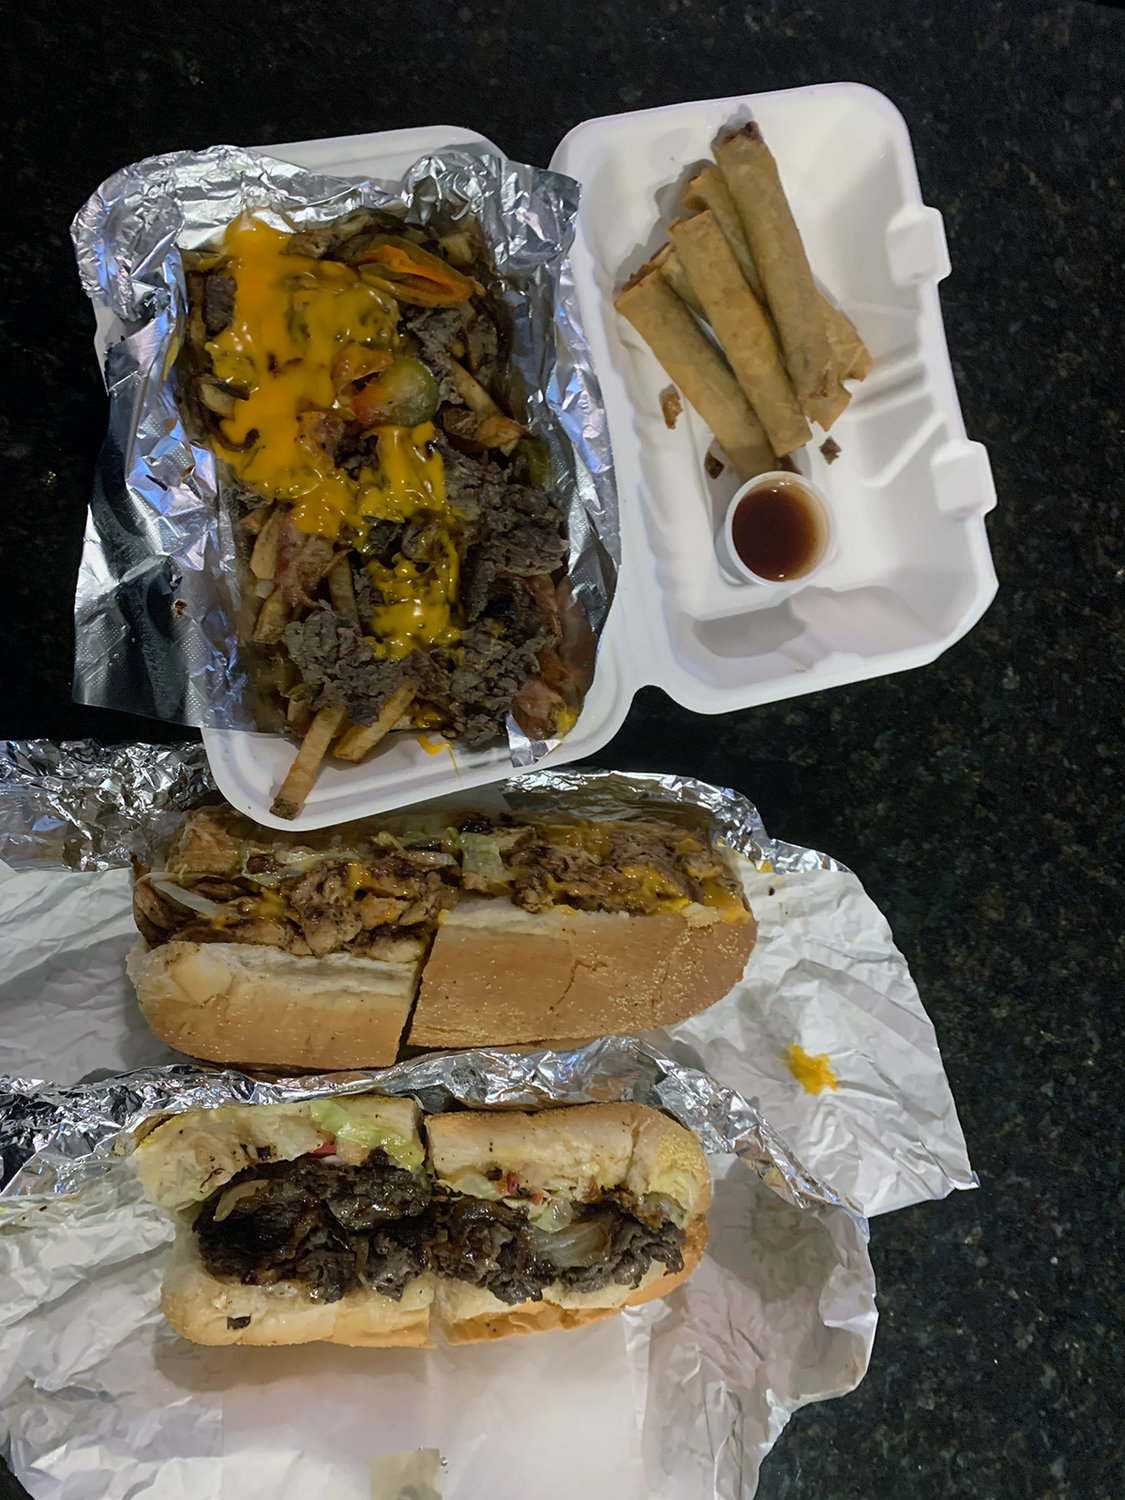 The cheesesteaks are indulgent, with several flavor and texture dimensions.